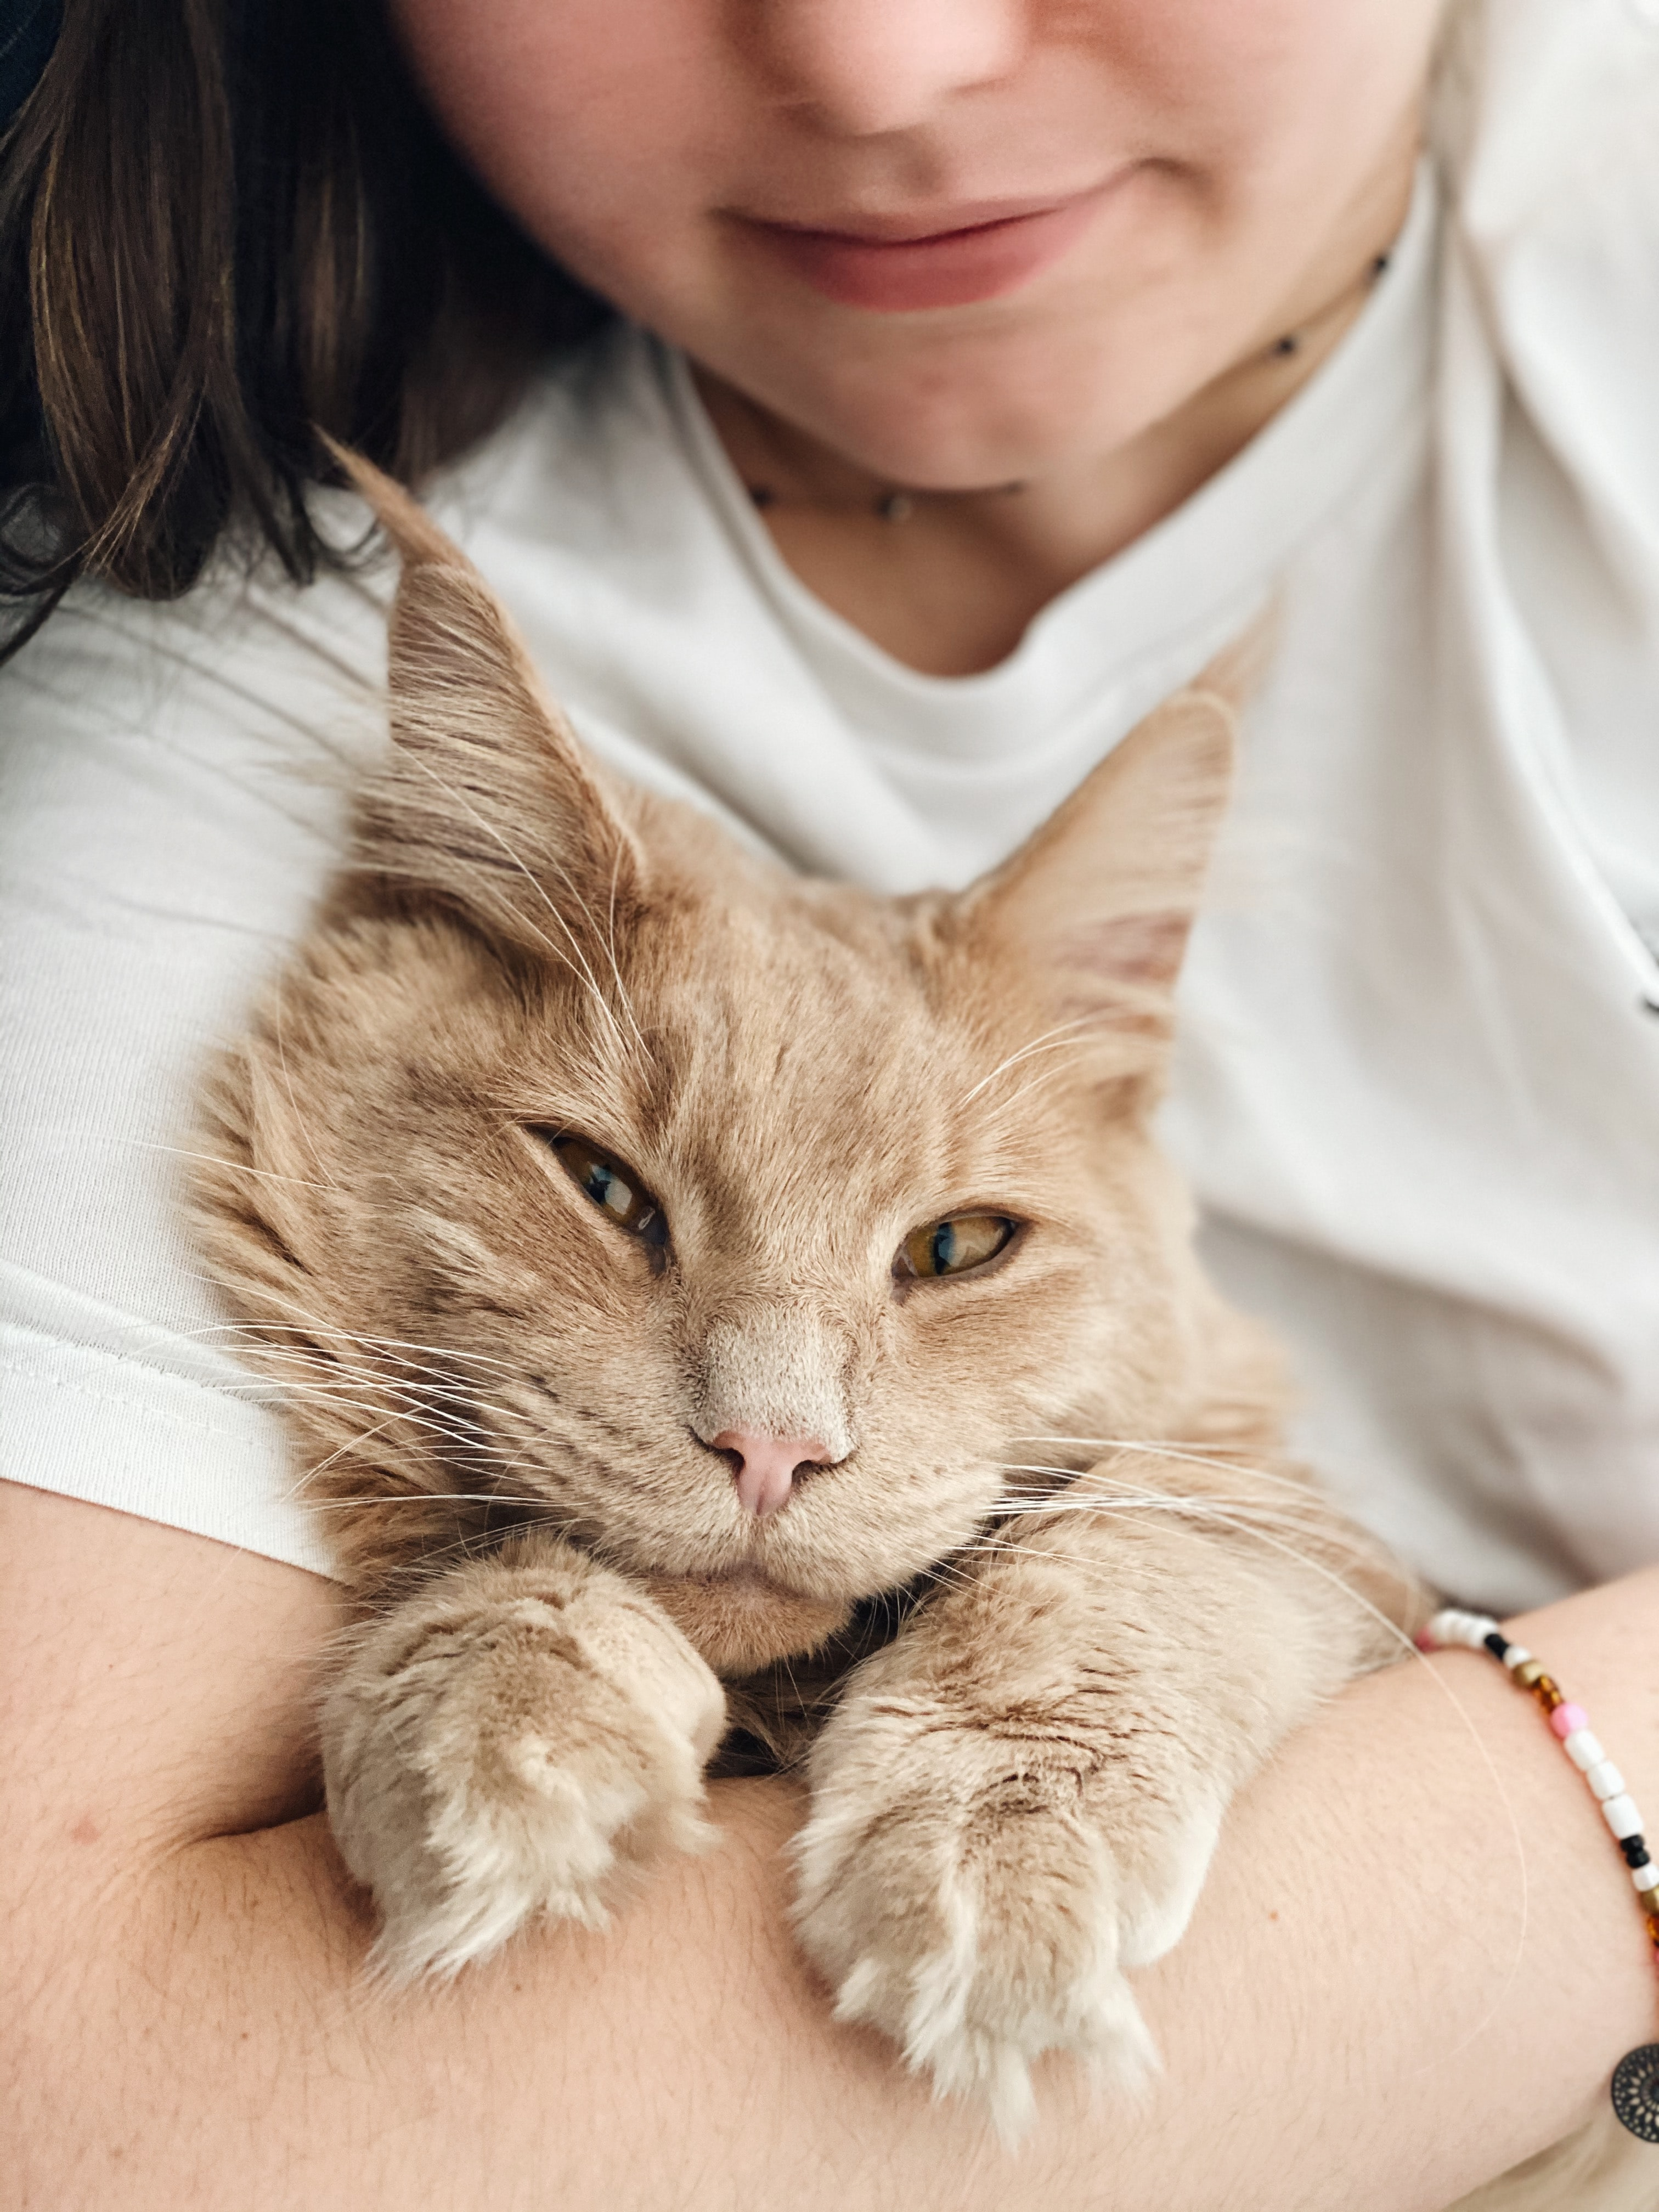 Pneumonia in cats and treatment